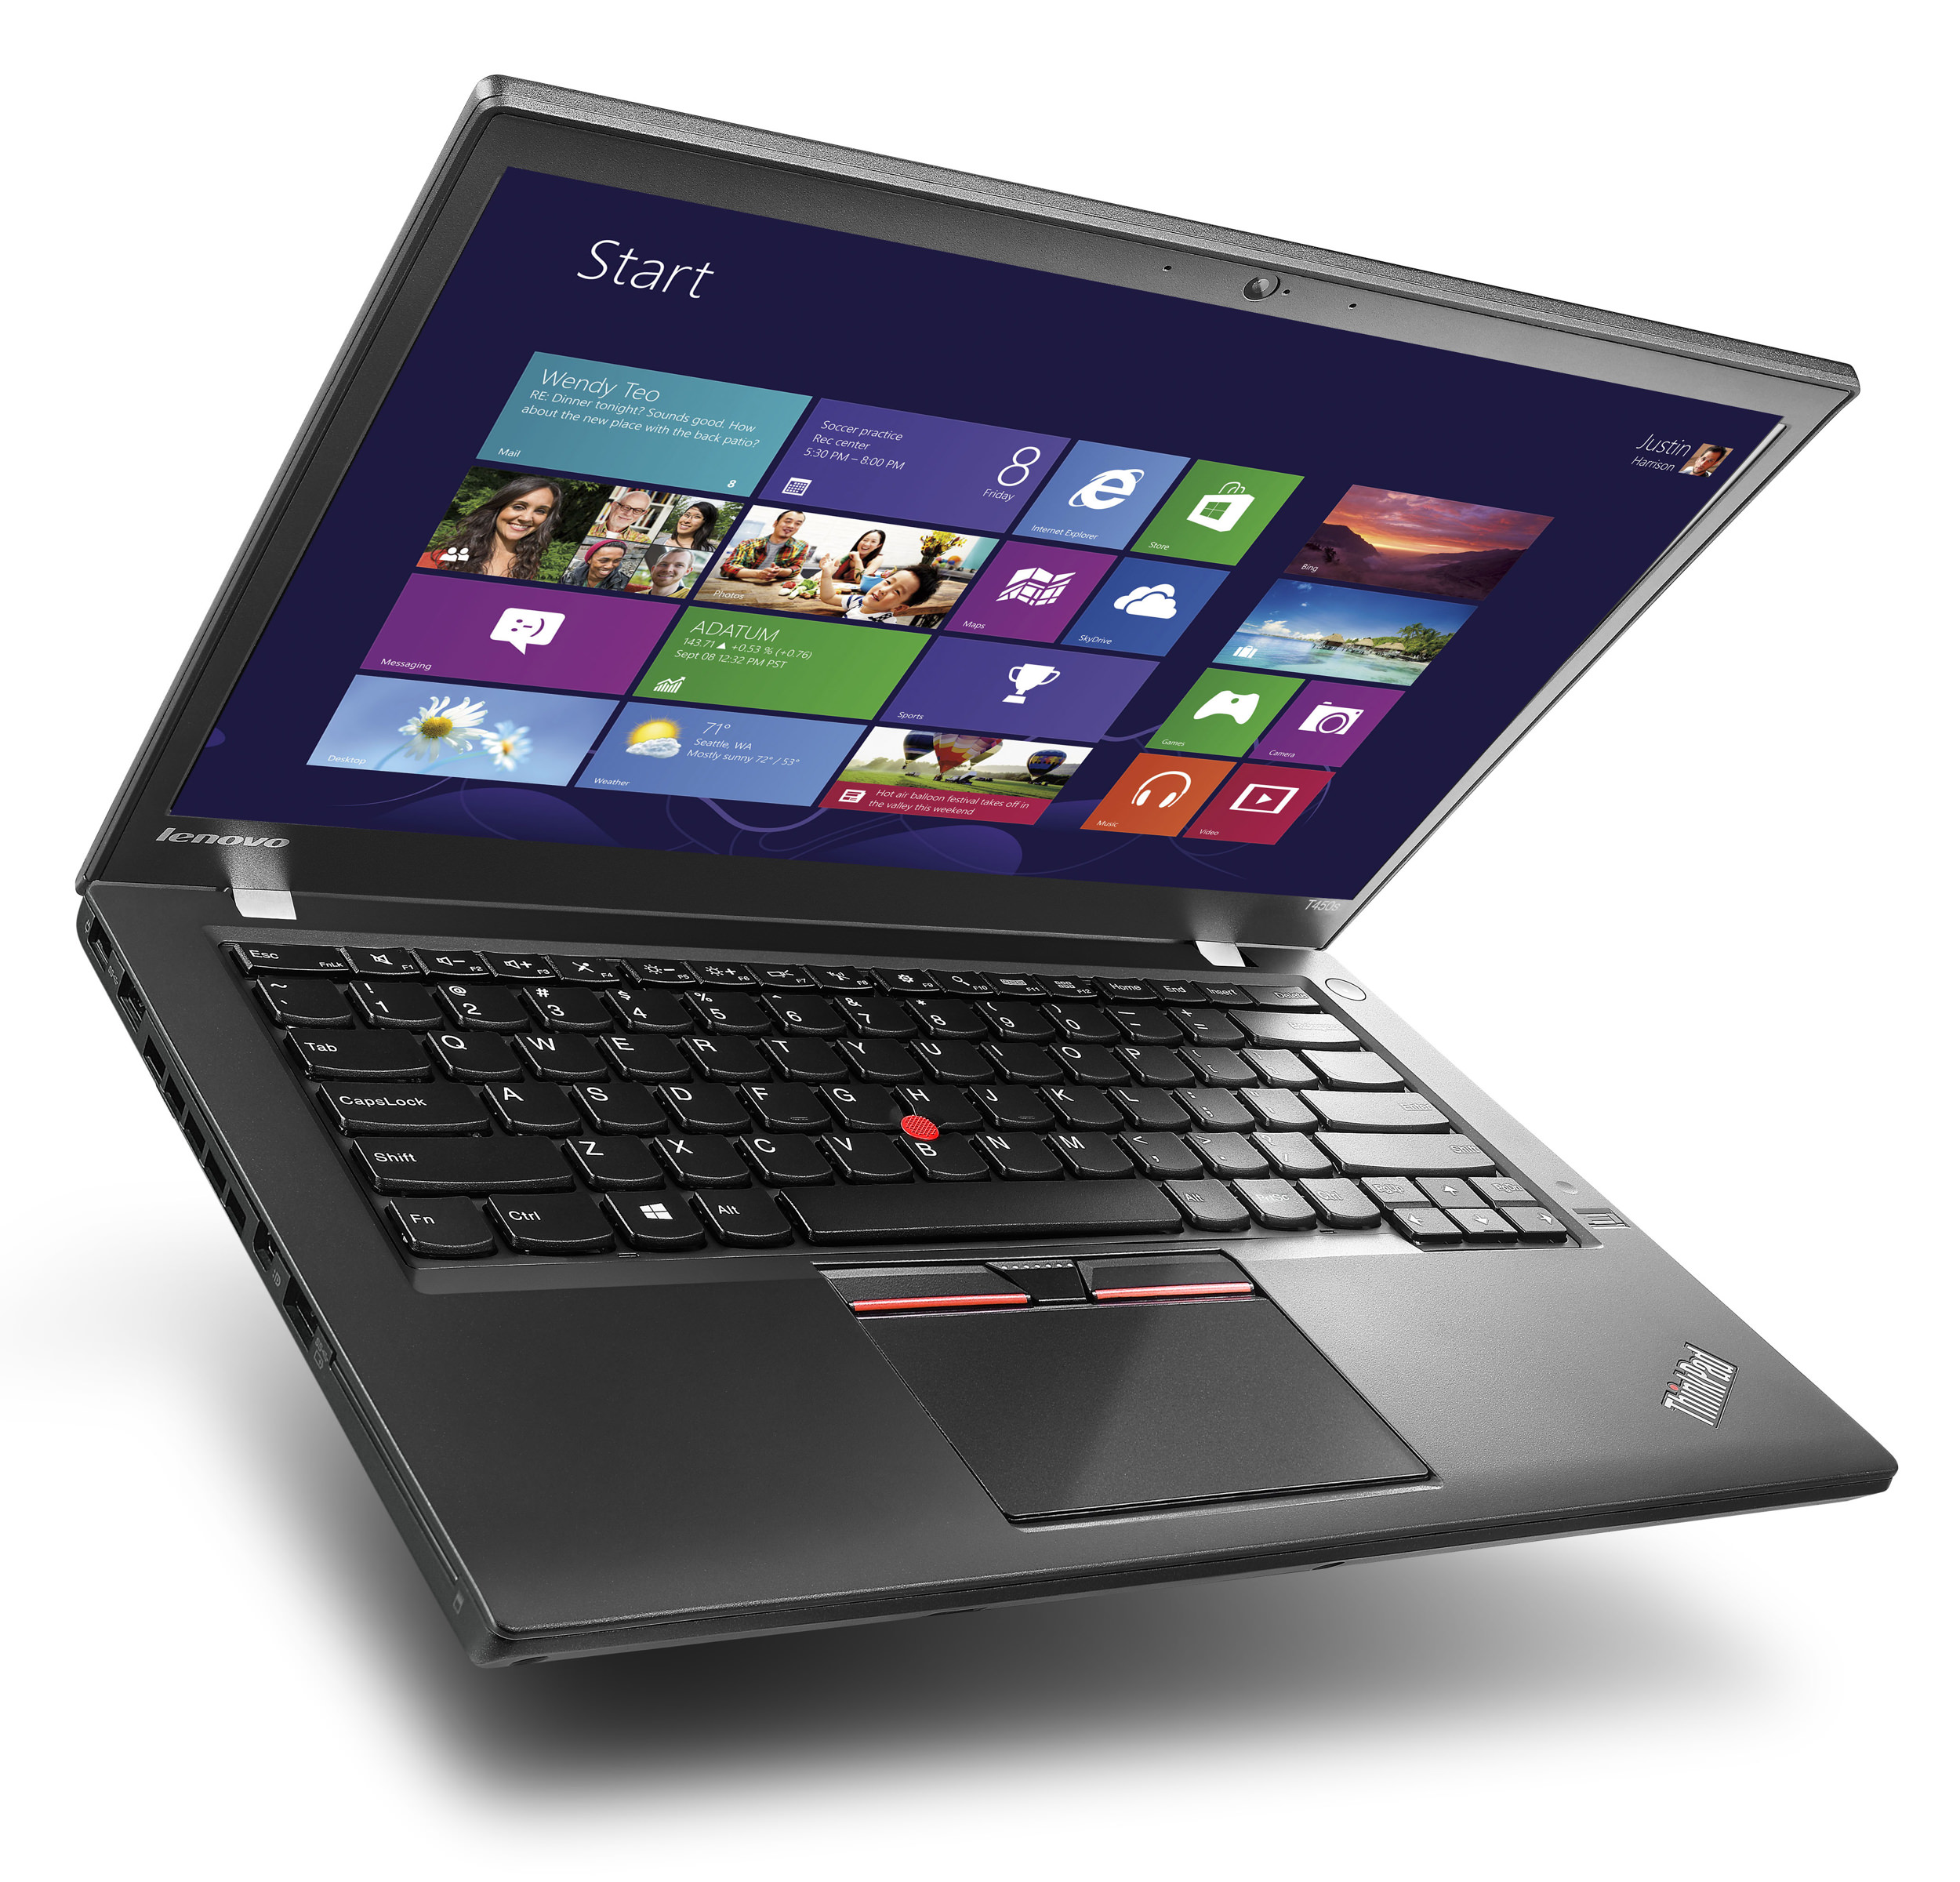 ThinkPad x250 (Large).jpg